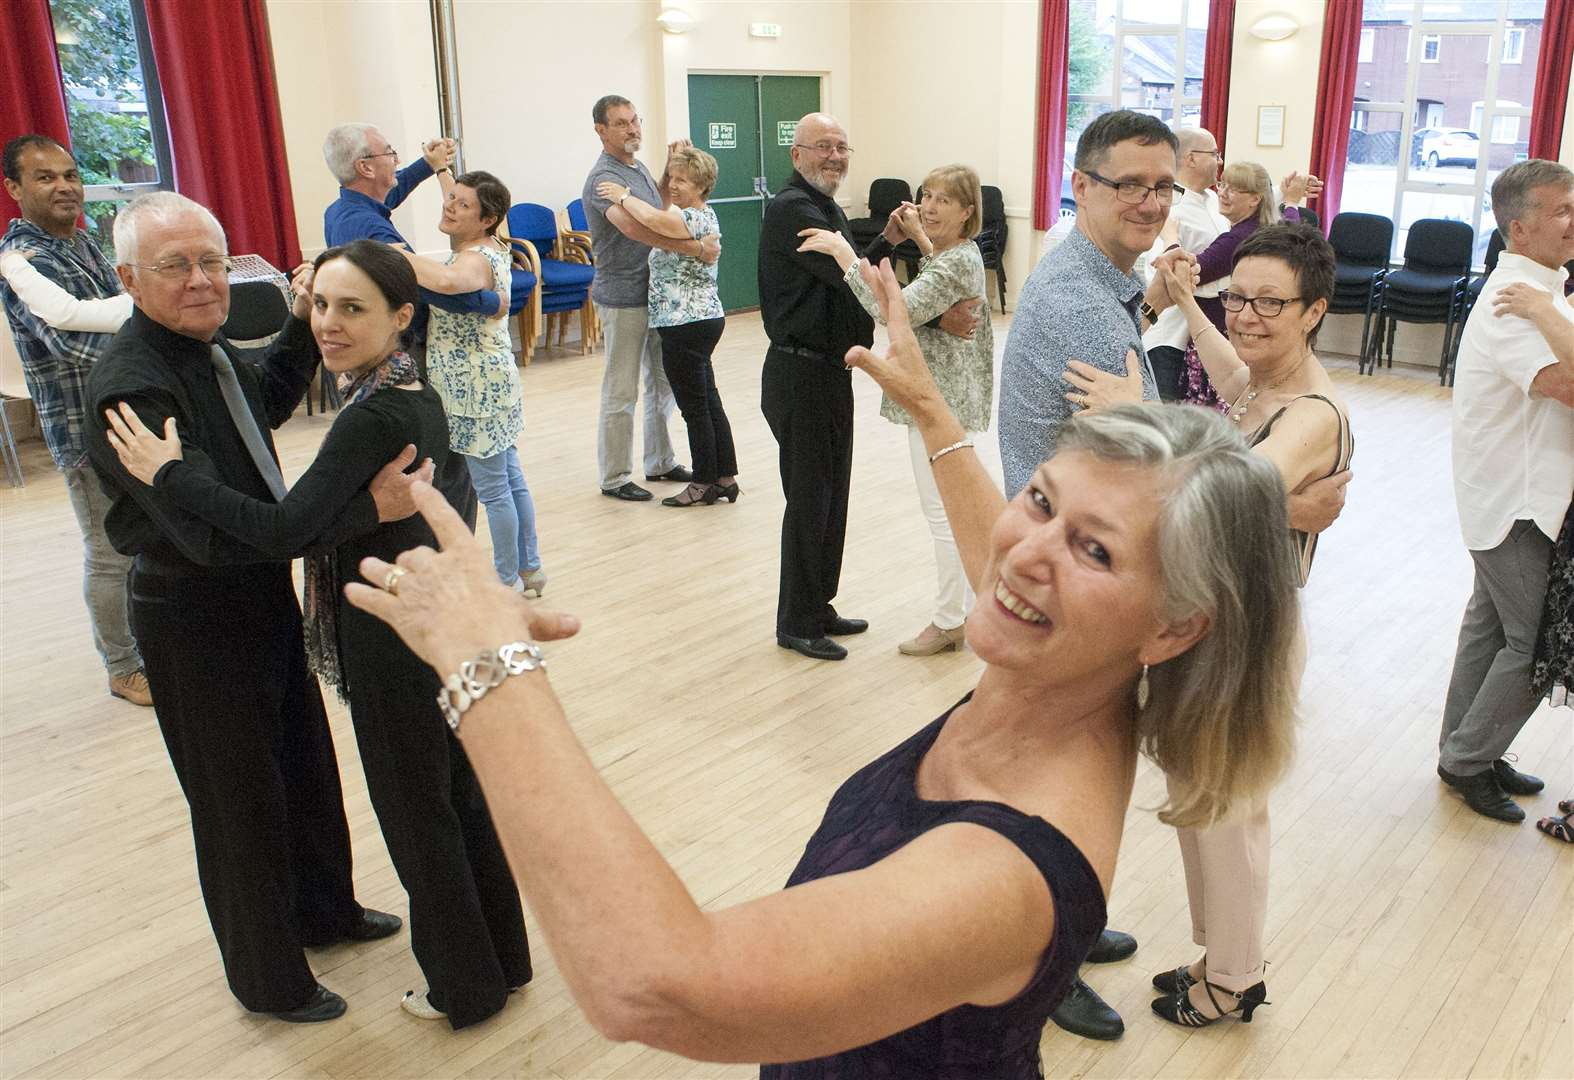 Dance school owner from Denver celebrates 50 years of teaching by holding charity fundraiser